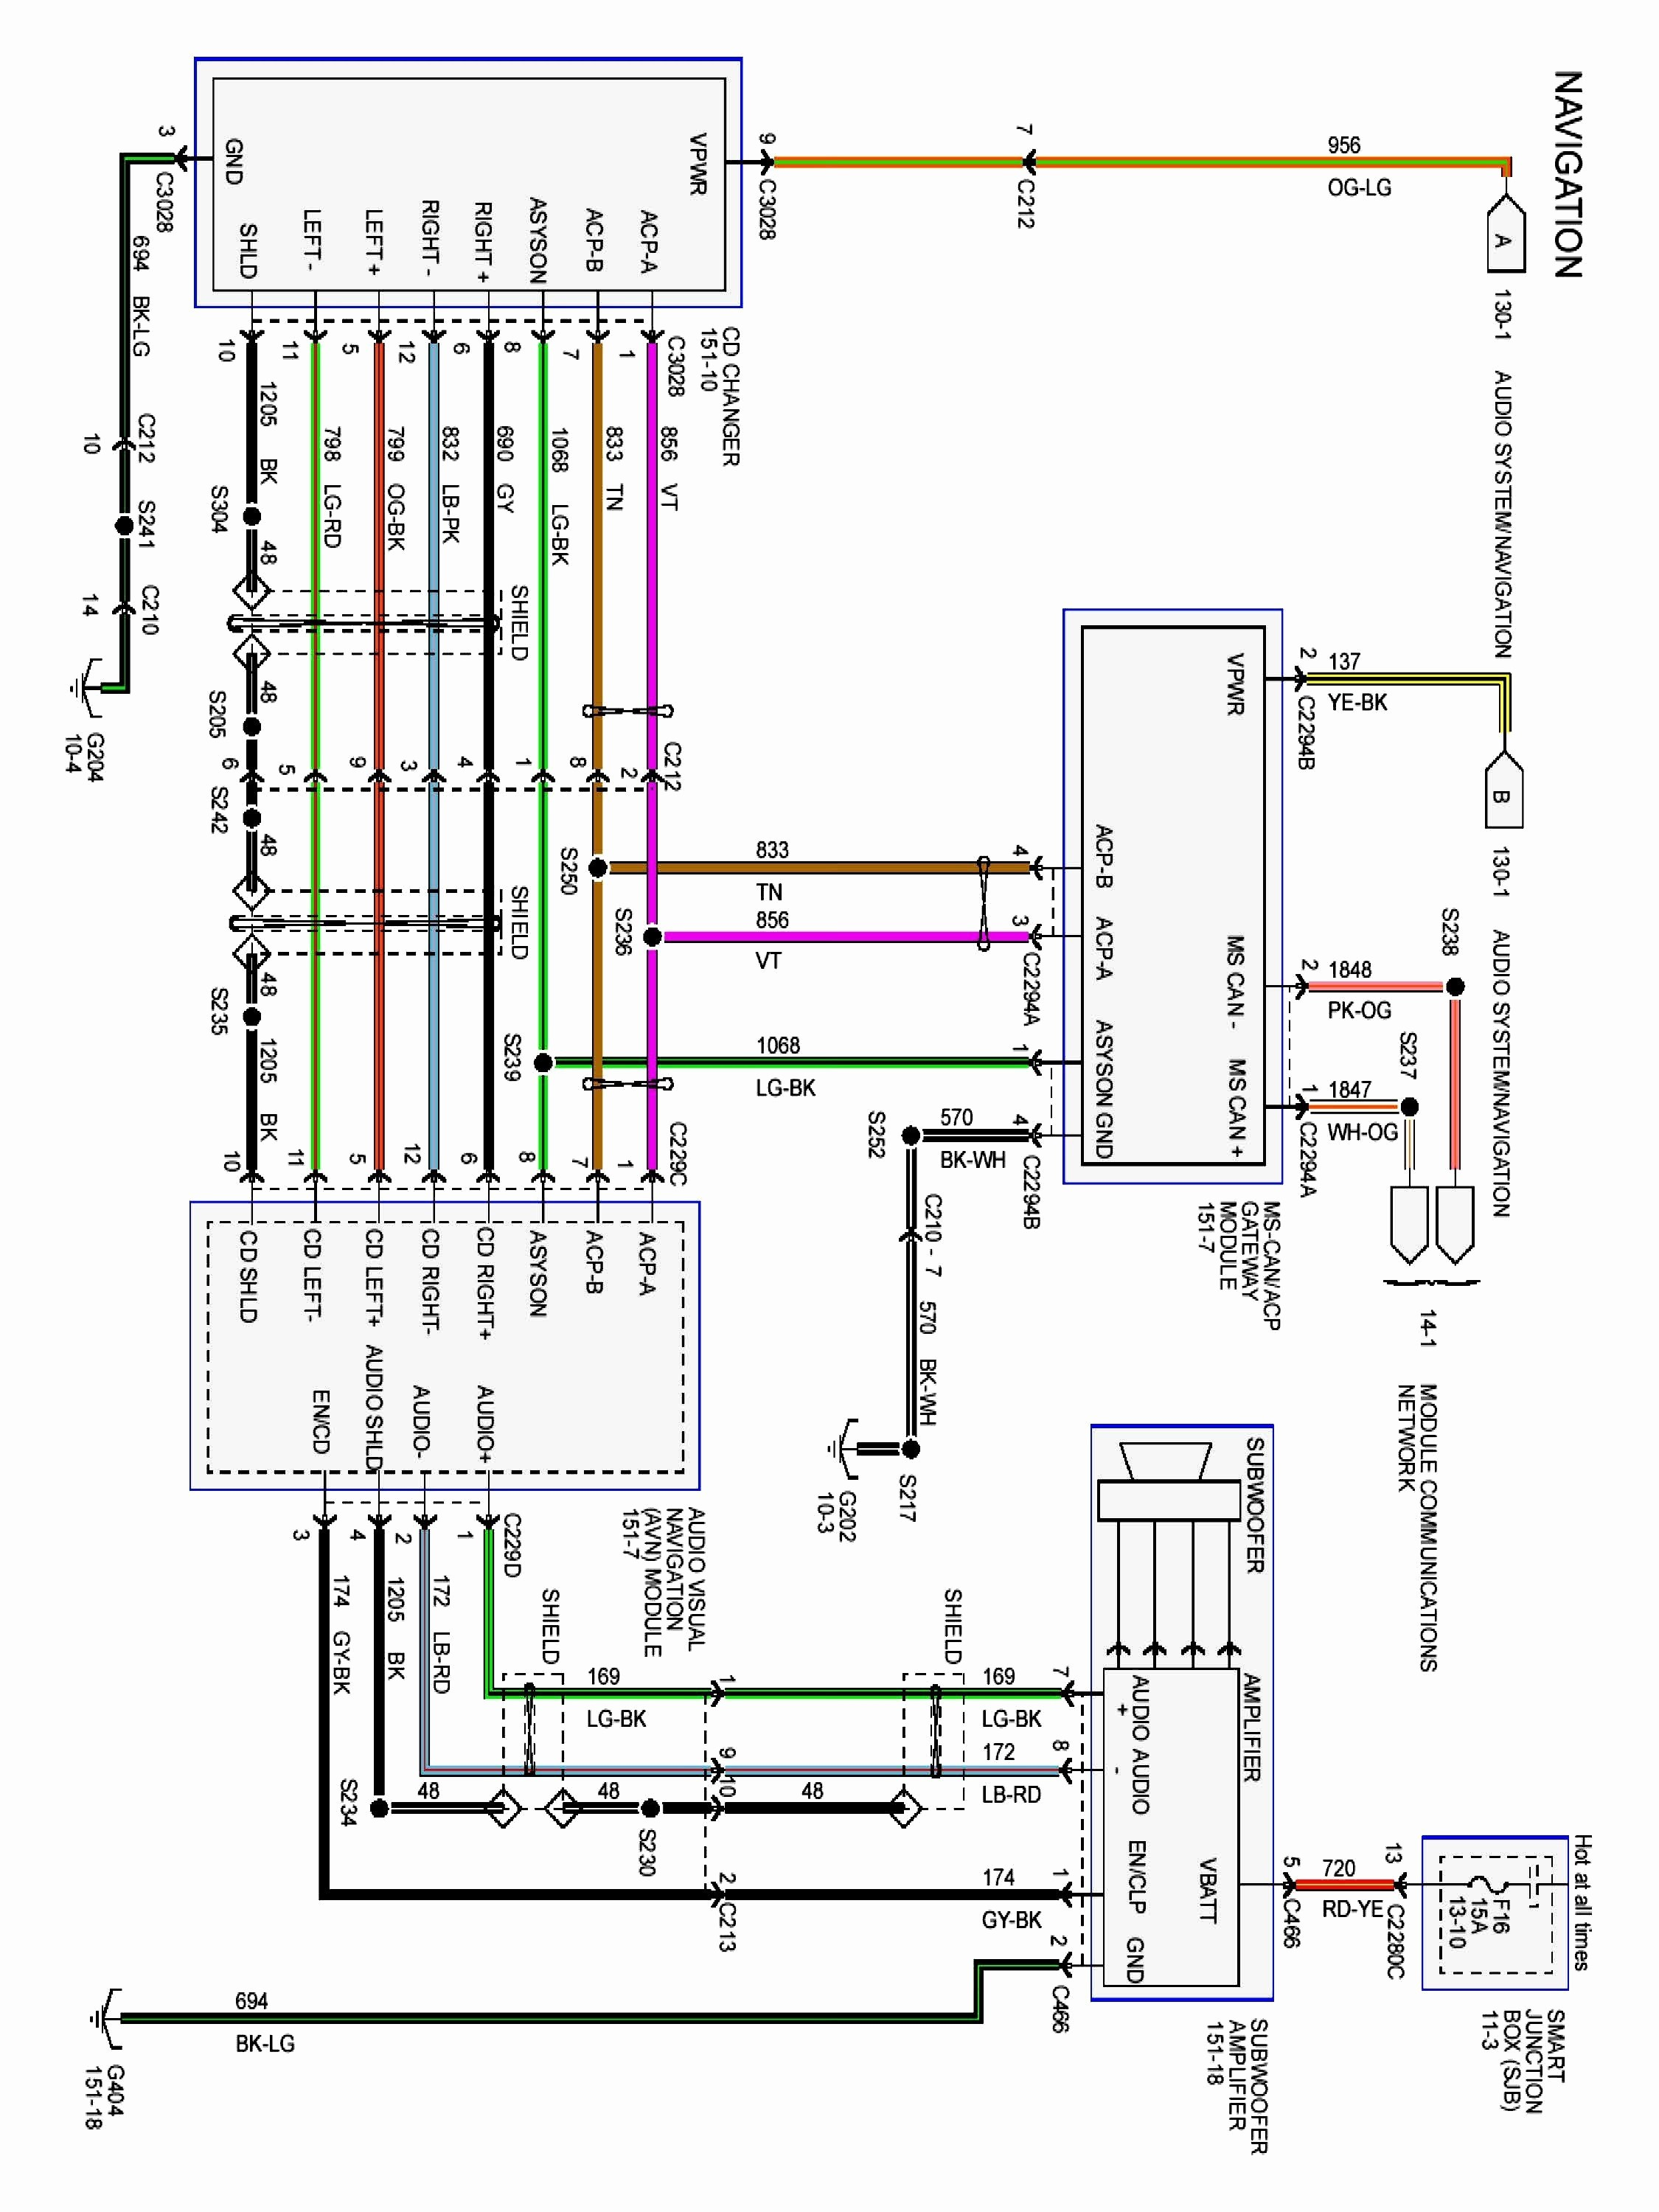 2000 ford Taurus 3 0 Engine Diagram 2003 ford Taurus Relay Diagram Another Blog About Wiring Diagram • Of 2000 ford Taurus 3 0 Engine Diagram